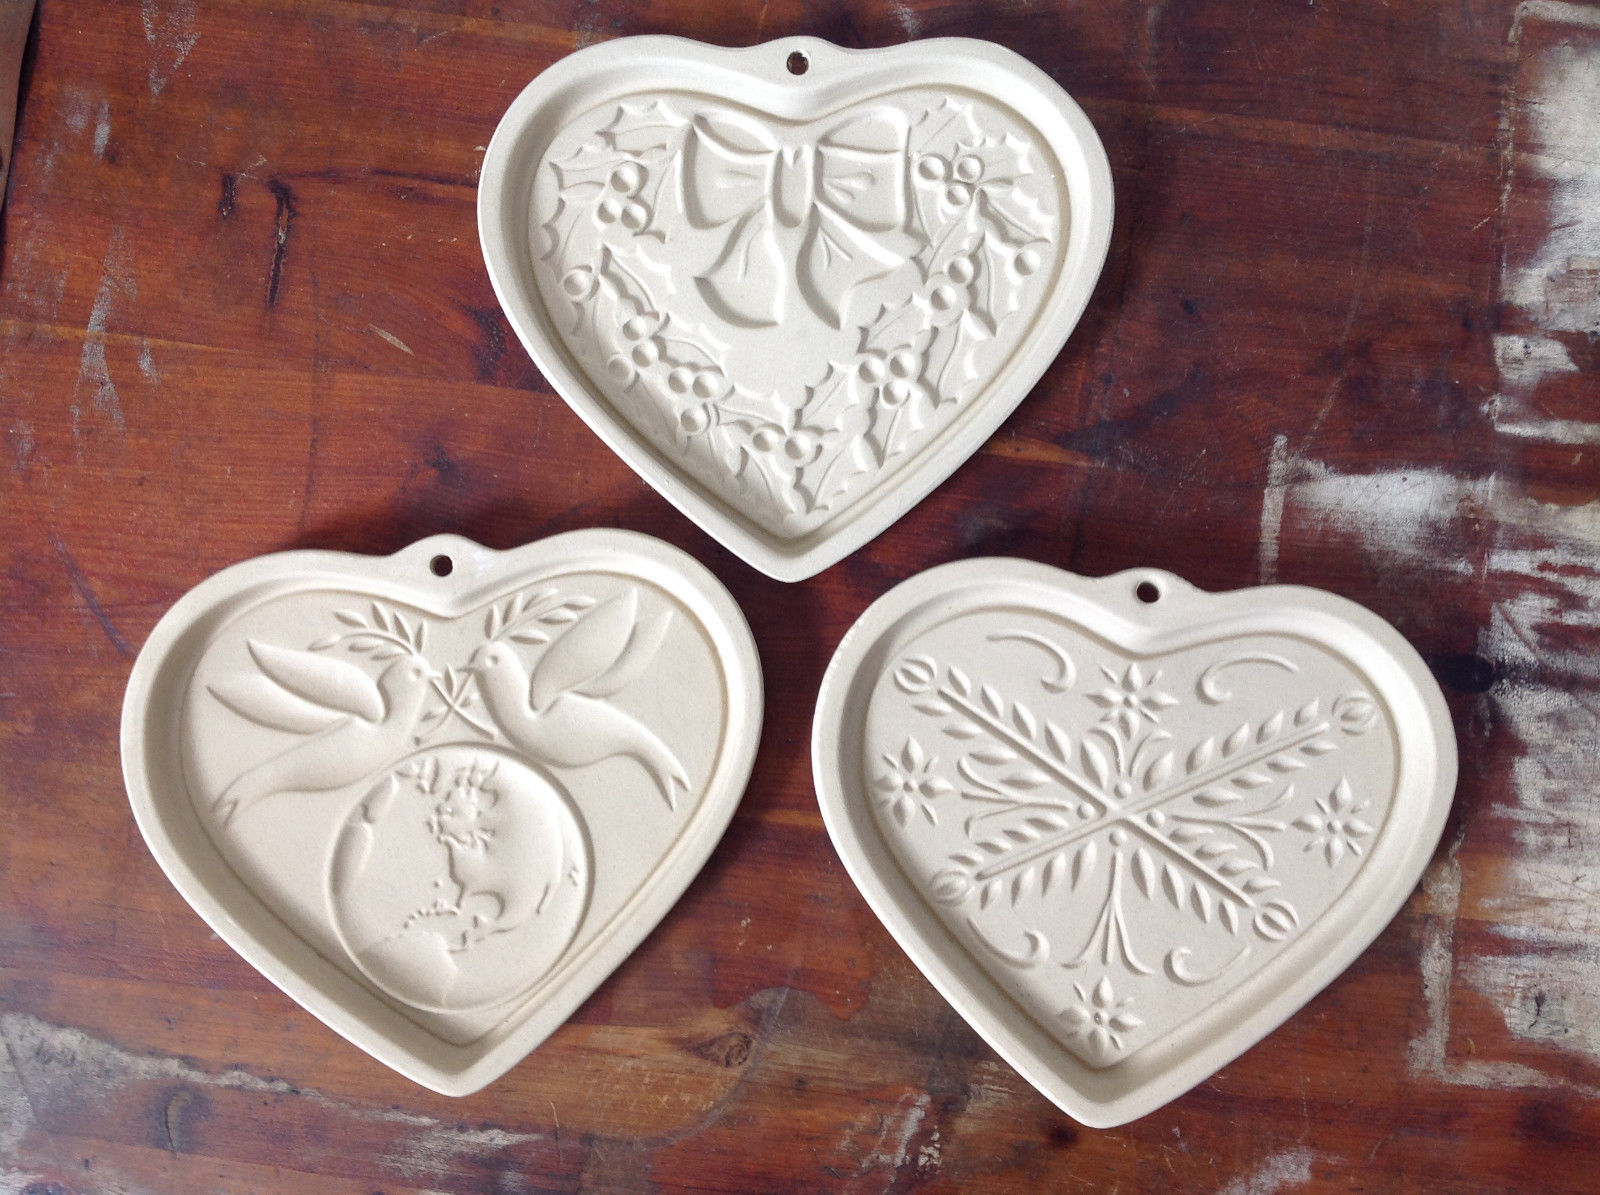 Set of 3 Heart Shaped Ceramic Cookie Press Plates Designs on Inside of Plates